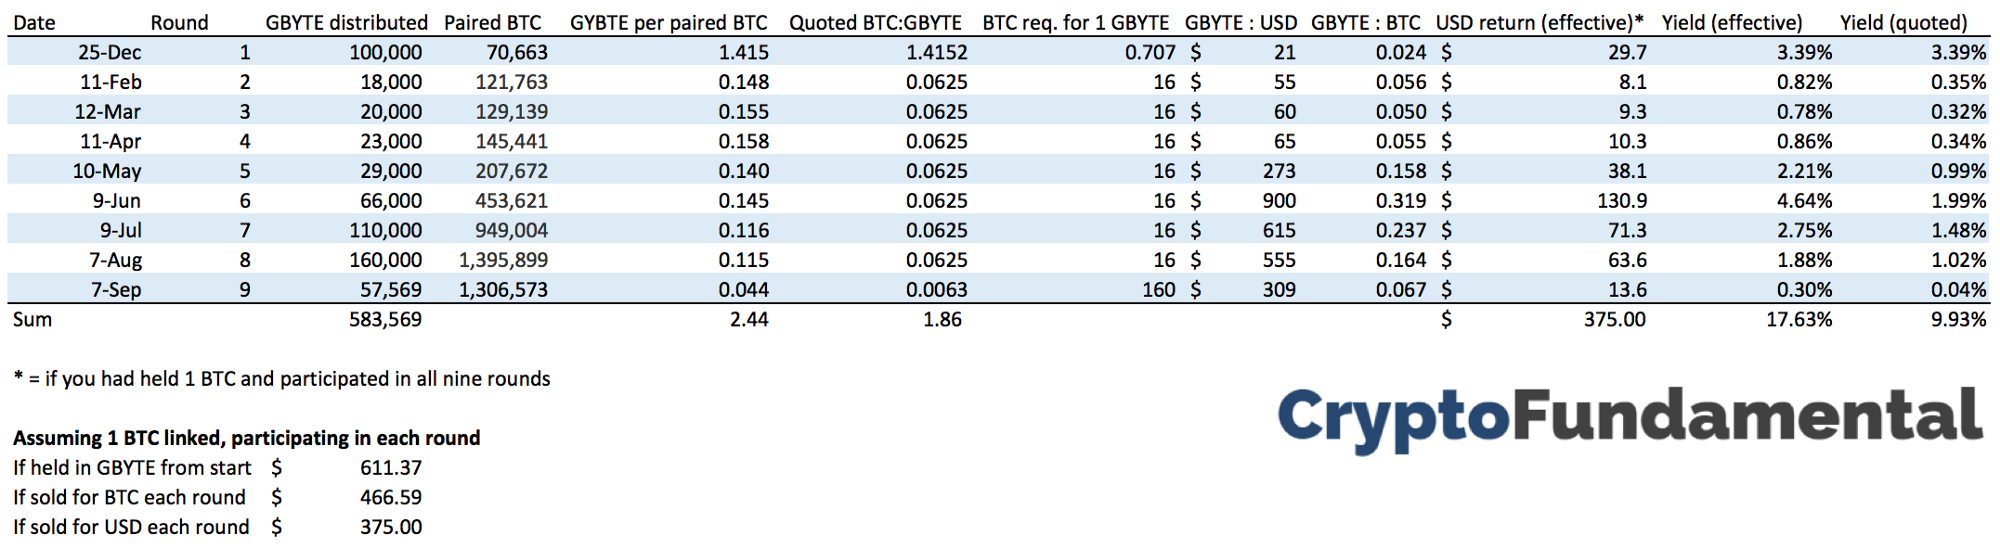 Crypto dividends analyzing byteballs airdrops and yield in actuality 13m btc had been linked in the previous 8 rounds so the average yield was generally much higher i summarize this in the below table ccuart Image collections